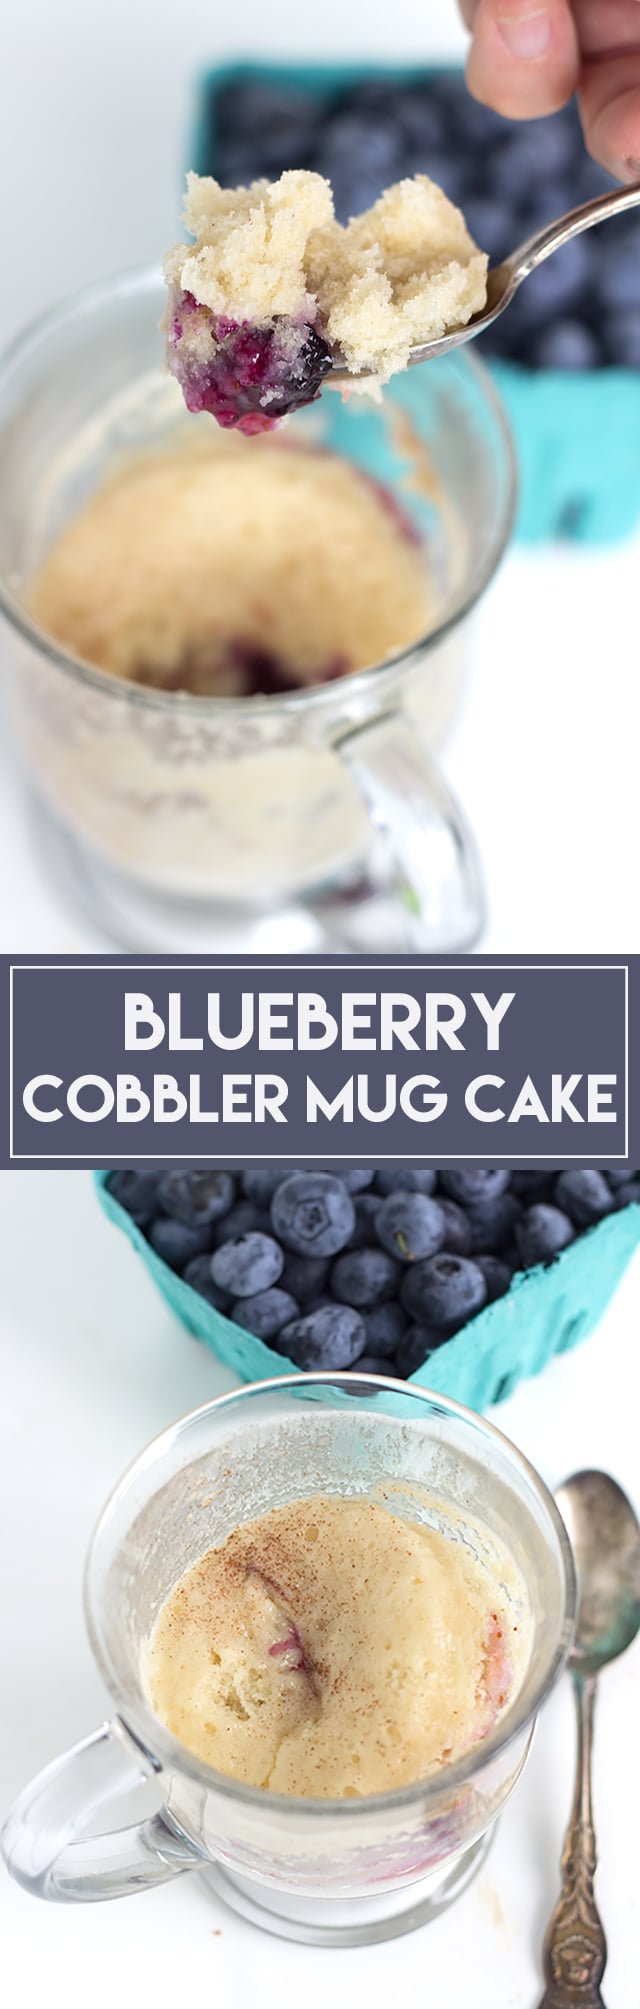 Blueberry Cobbler Mug Cake - Fruit on the bottom and a layer of moist vanilla cake. It's the quickest and easiest cobbler you'll make!